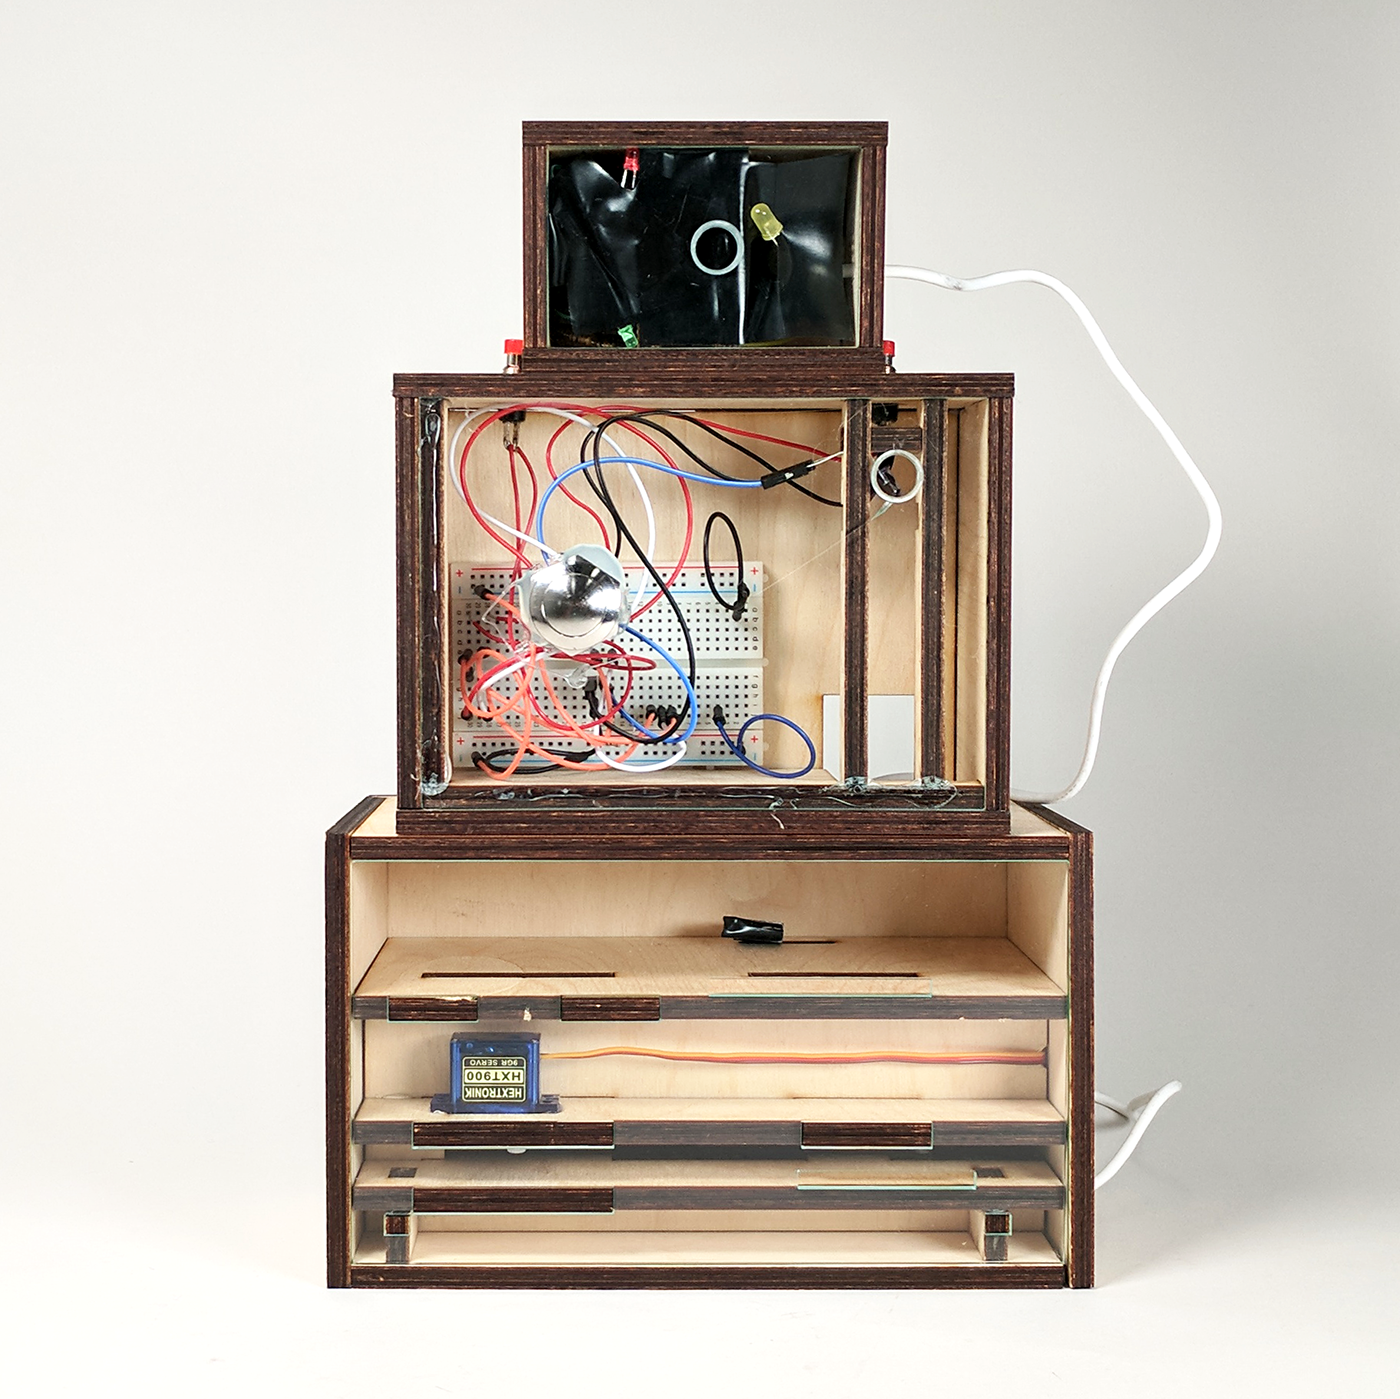 IoT,Internet of Things,connected ecosystem,Rapid Prototyping,wooden prototypes